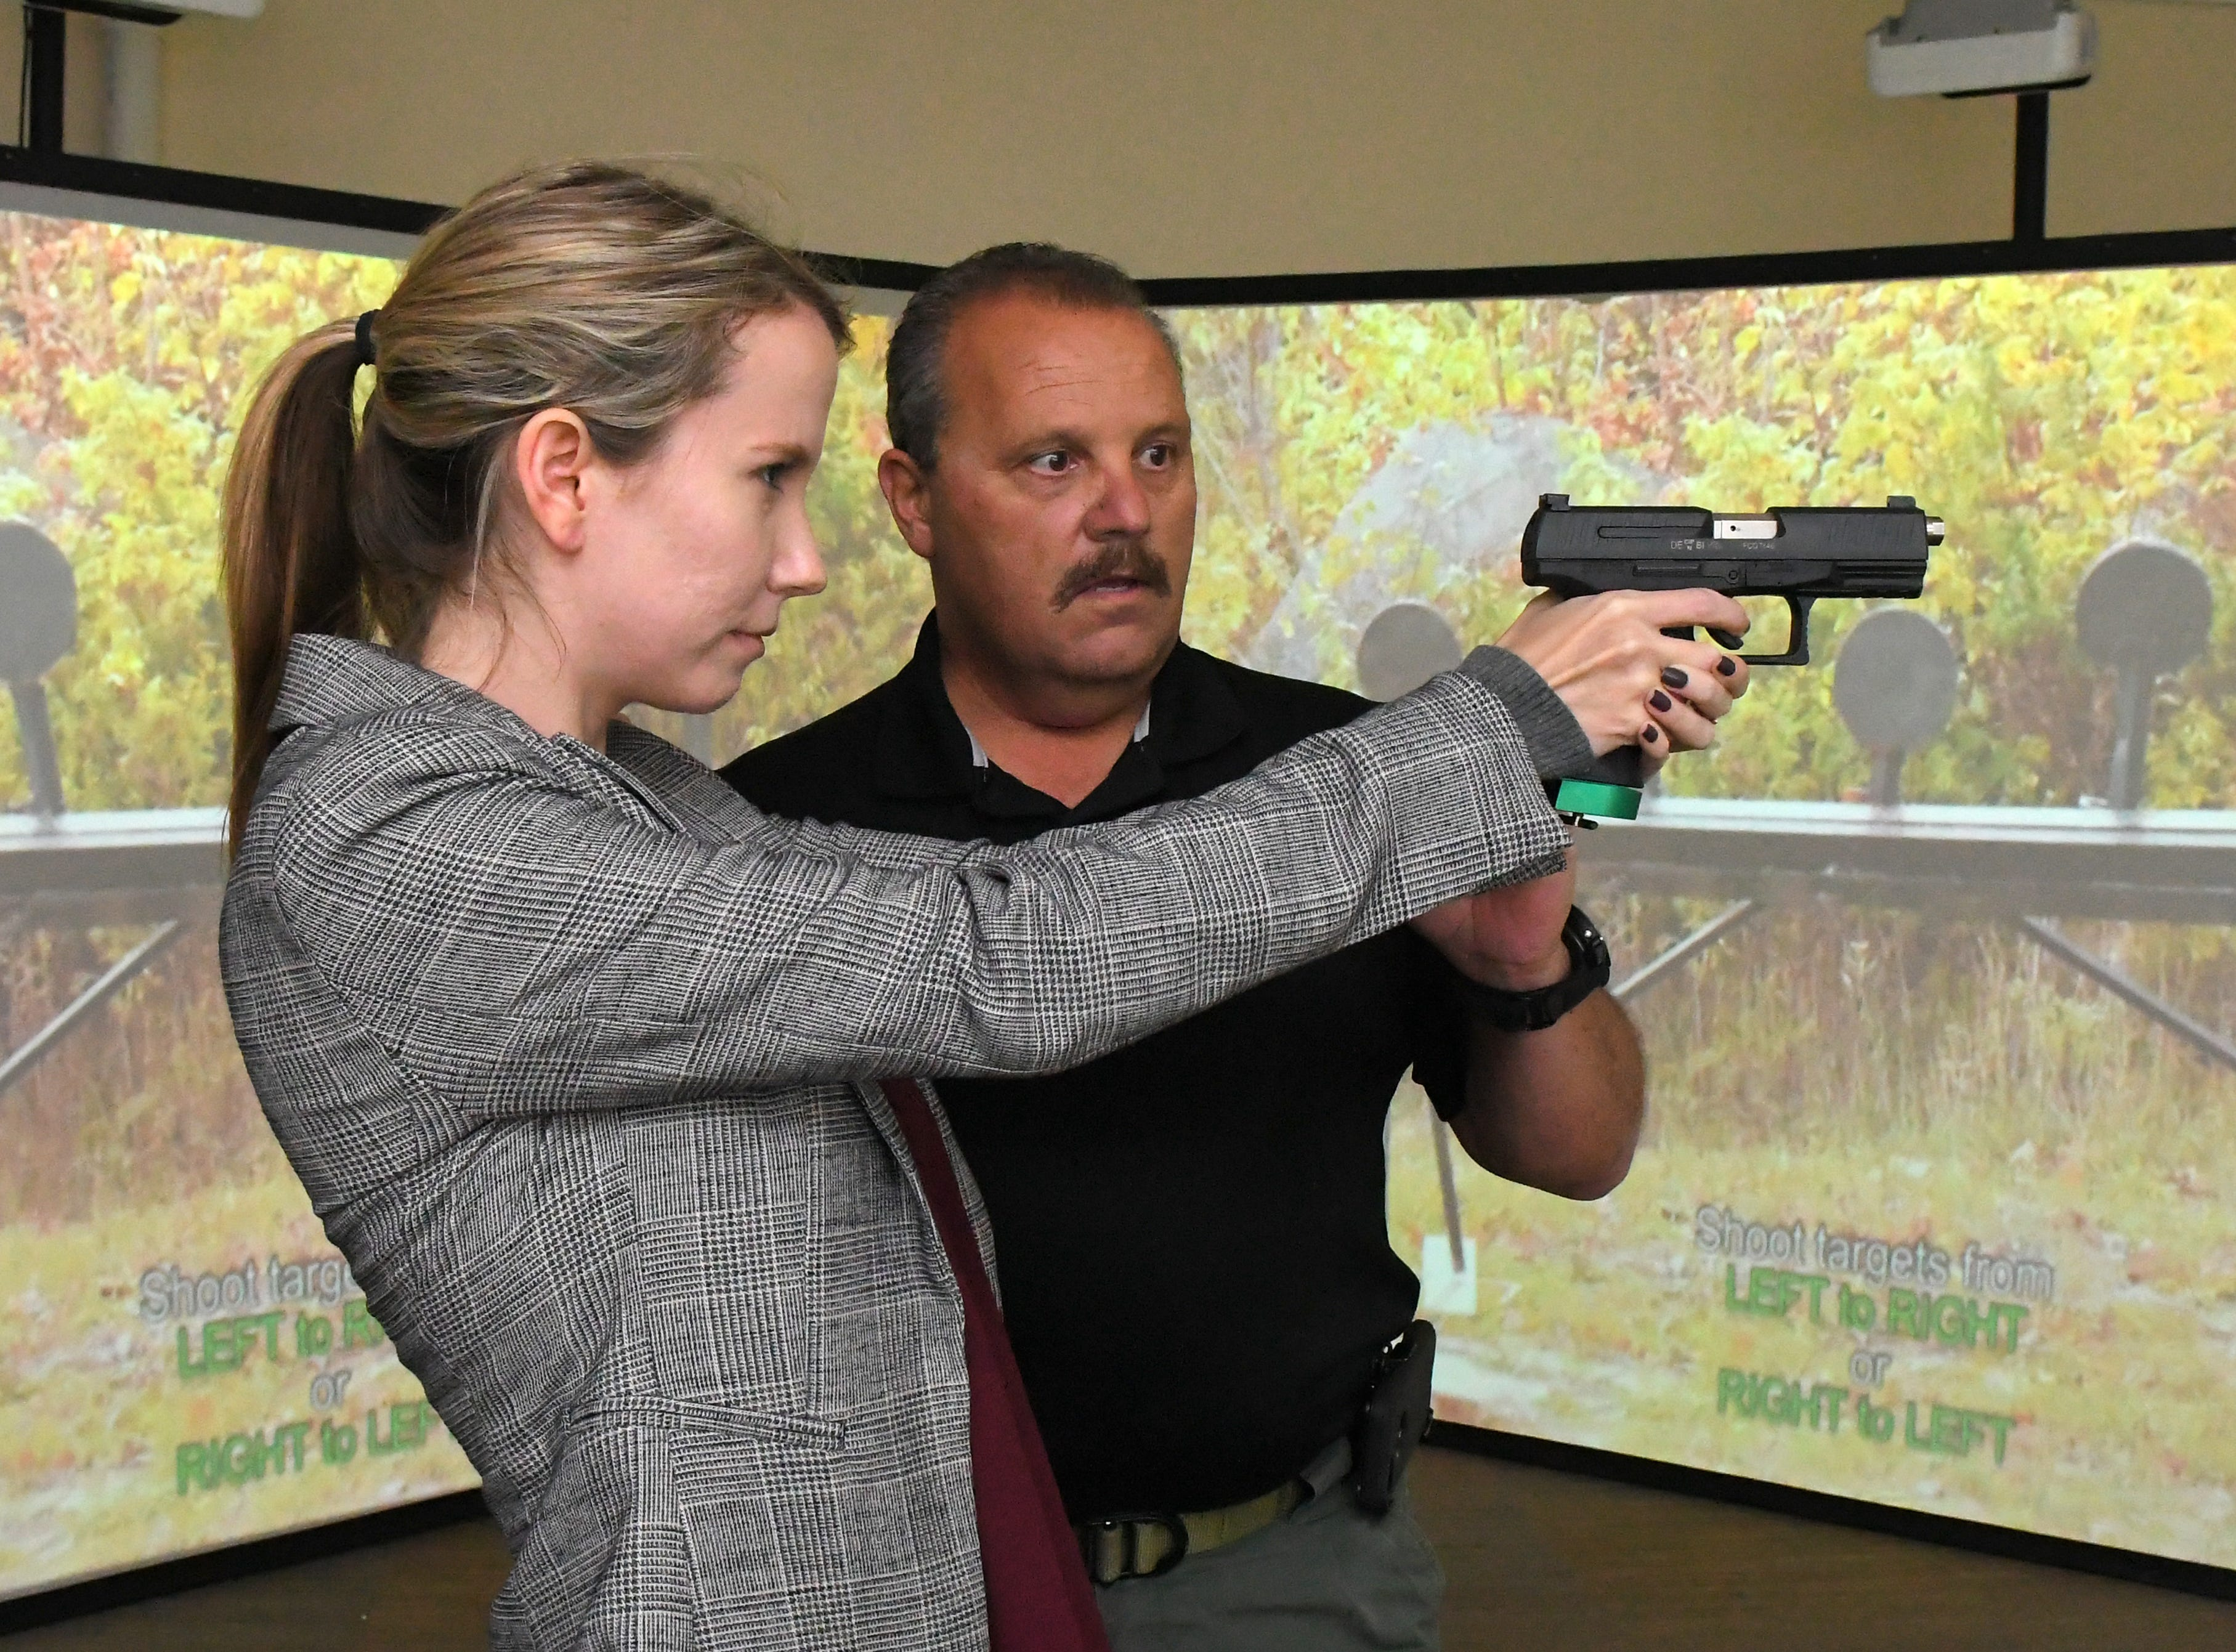 FLORIDA TODAY education reporter Caroline Glenn tries out the MILO Range 300 Theater with assistasnce from Cpl. Larry Plotkin. The MILO Range 300 Theater, a high tech interactive training system, is set up at a Brevard County Sheriff's Office facility in Sharpes. It is part of a program to help  train school guardians. Those using the MILO Range are armed with simulated handguns, and immersed in a 300 degree video simulating an active shooting situation in a school, office, and other locations.